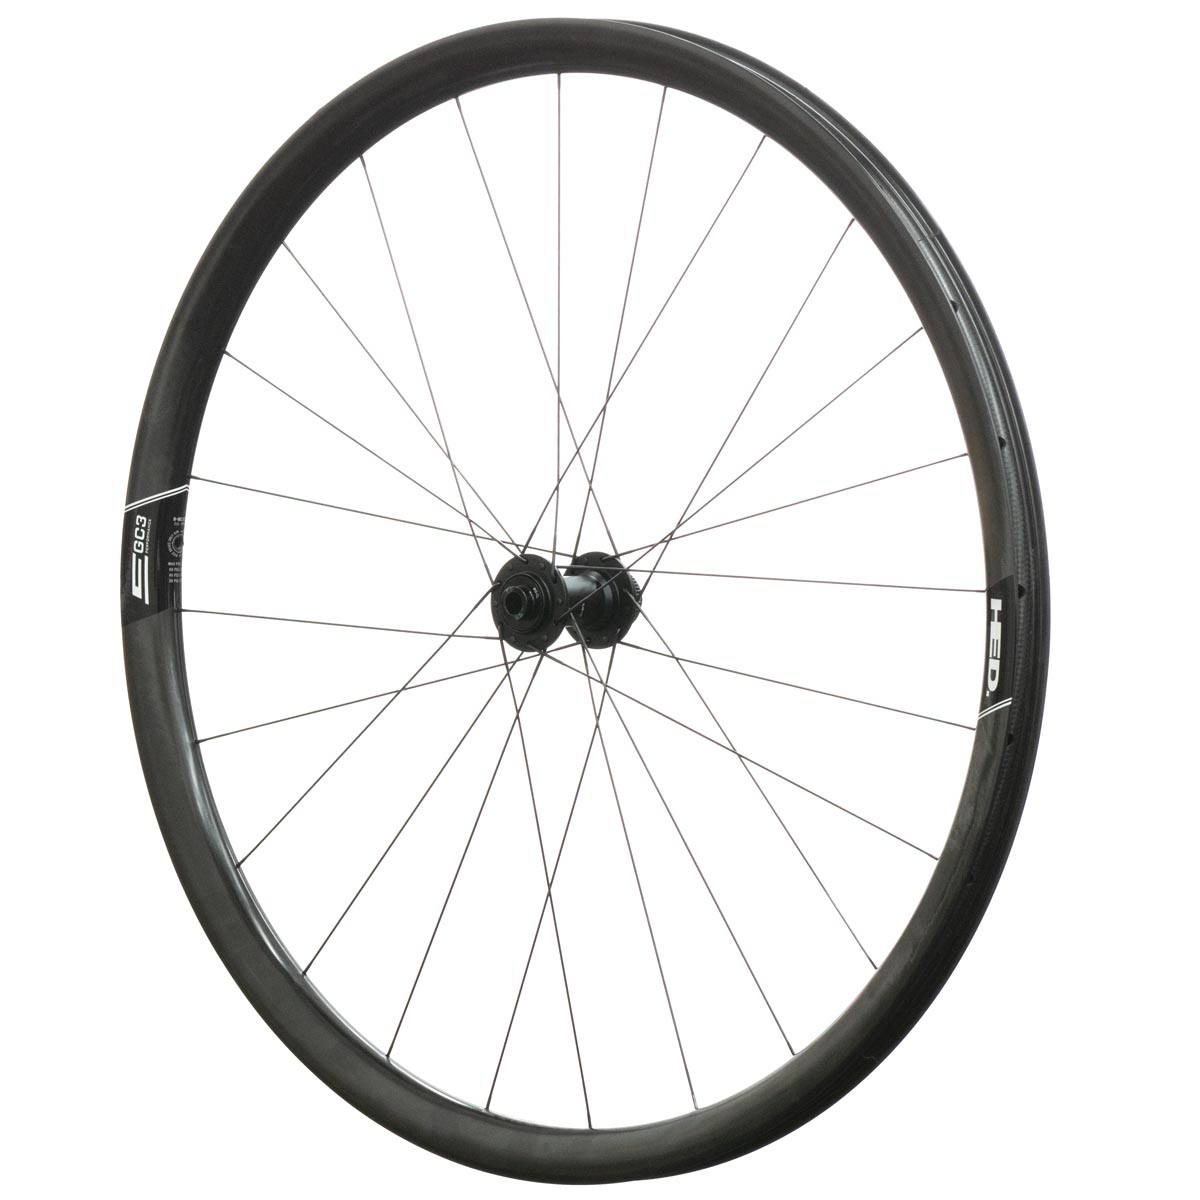 HED Emporia GC3 Performance wheelset front